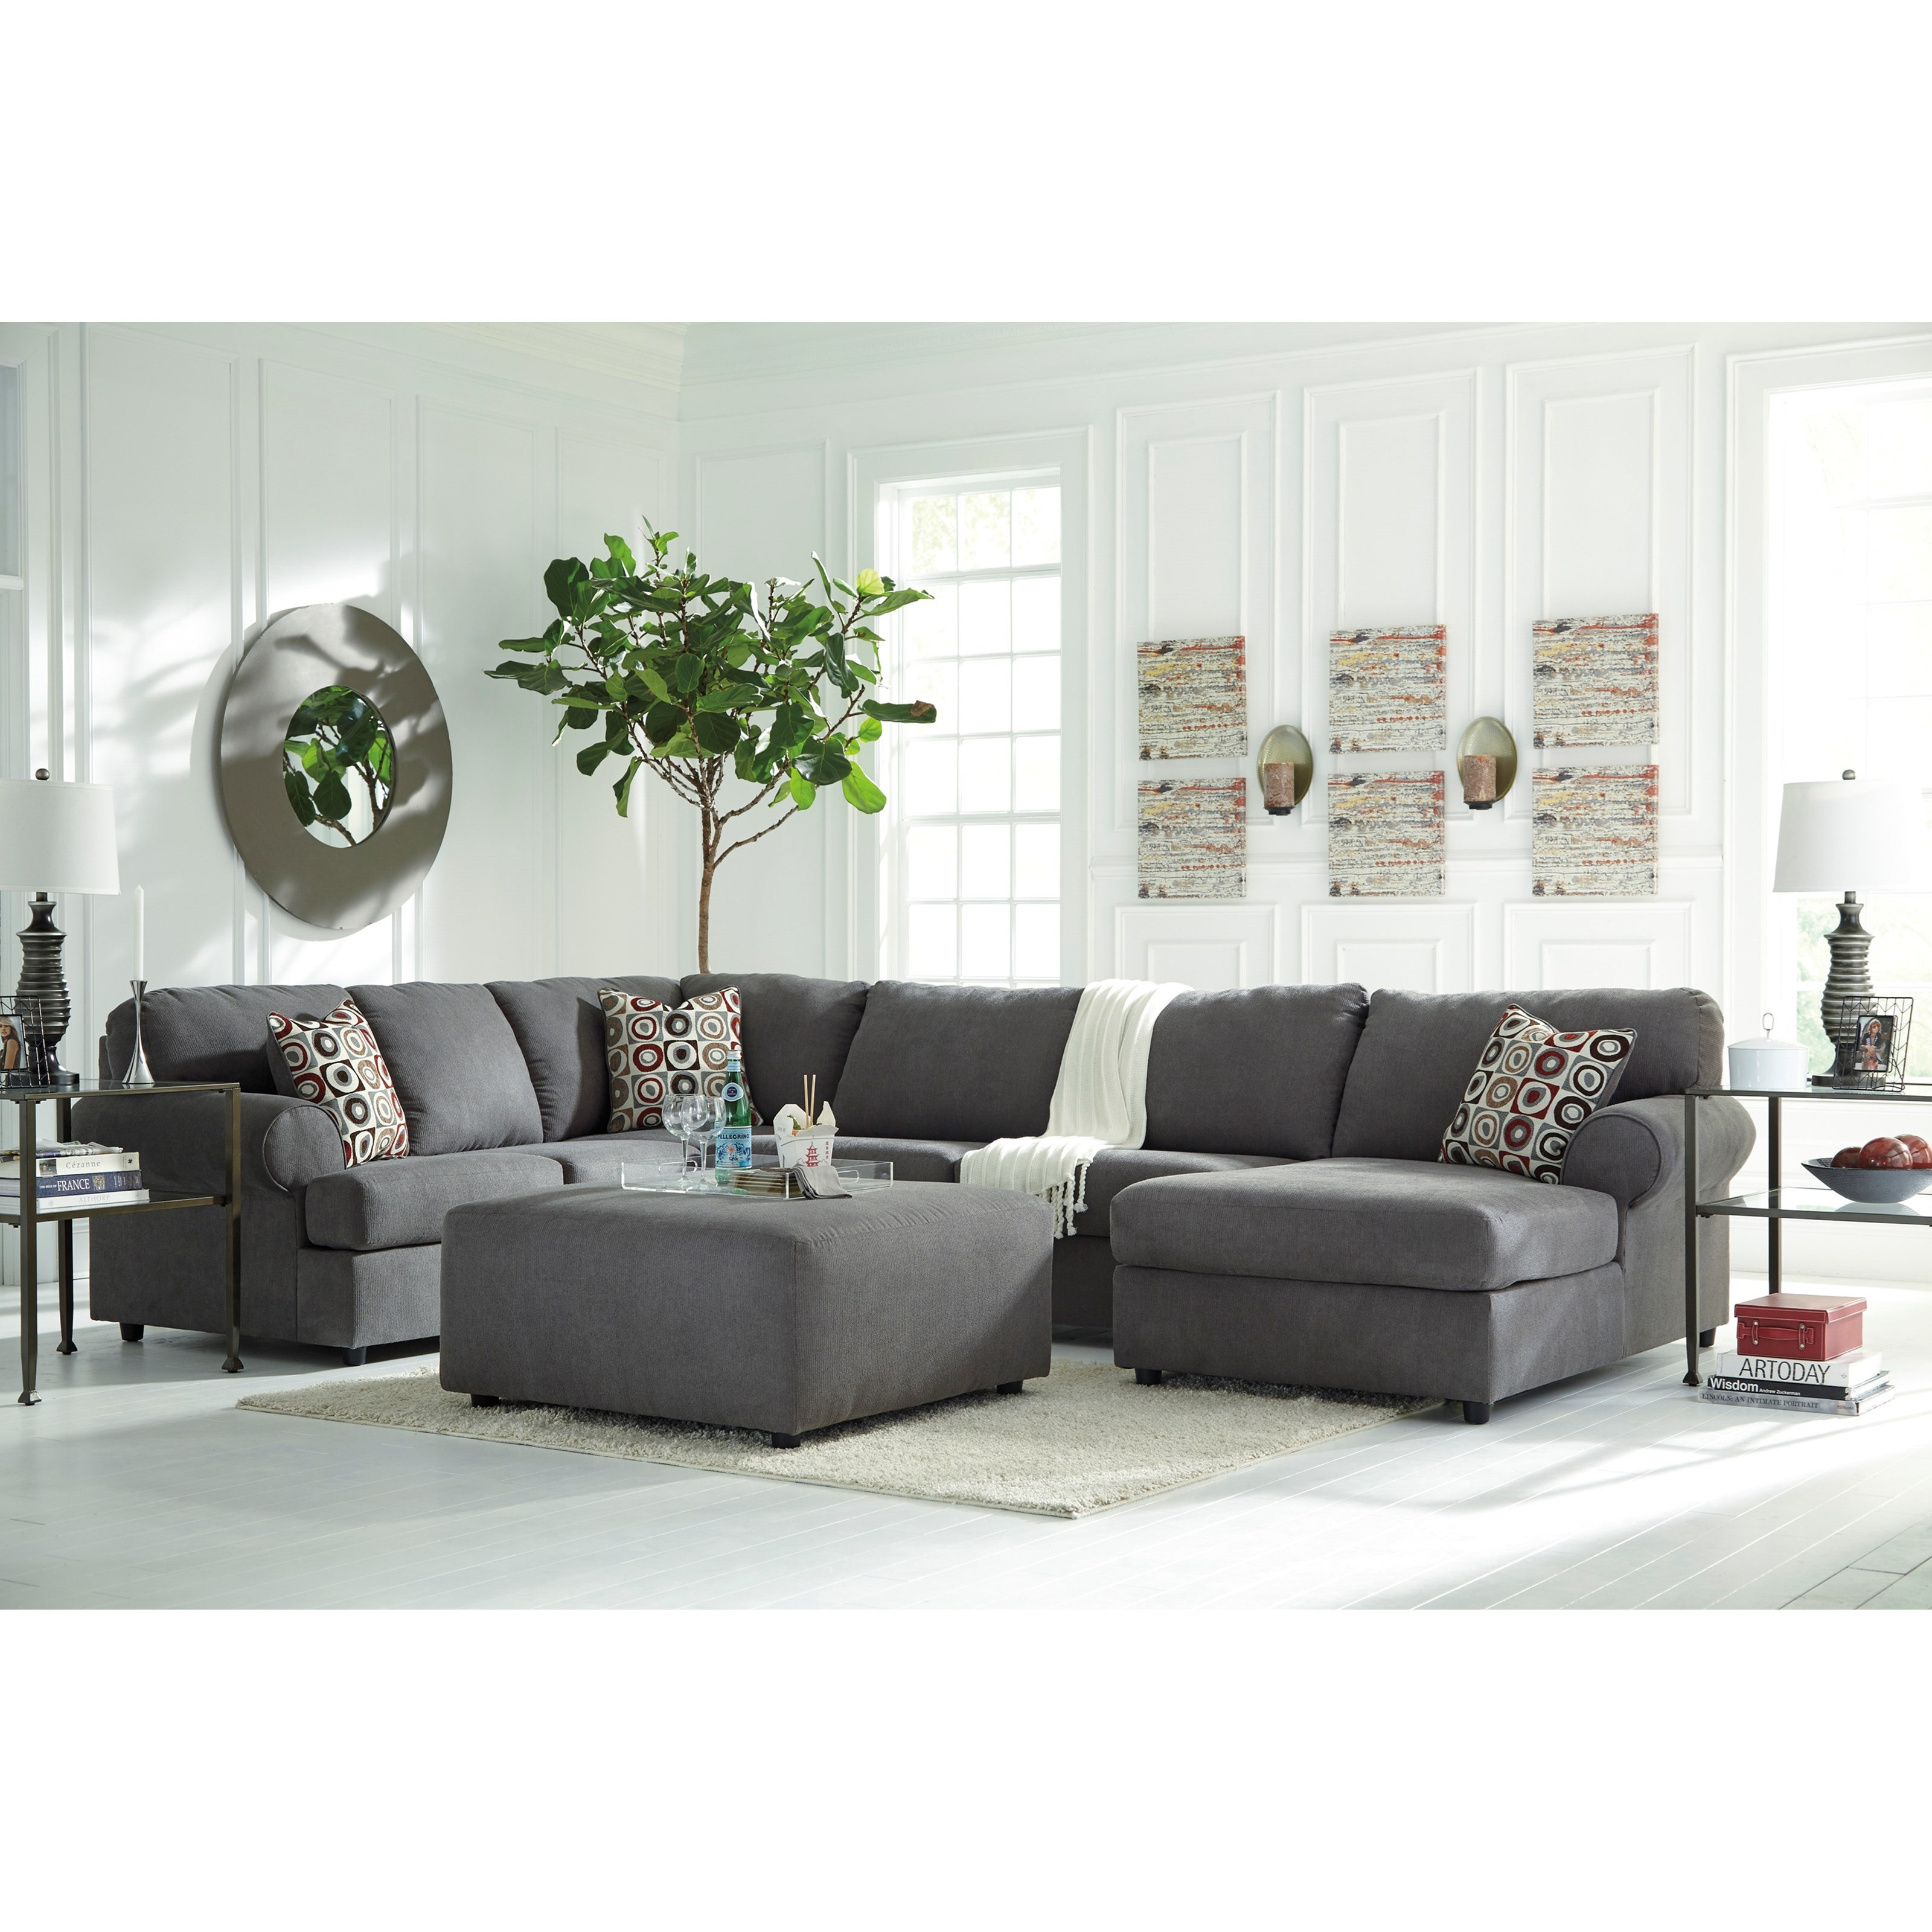 Signature design by ashley jayceon stationary living room for Room store furniture